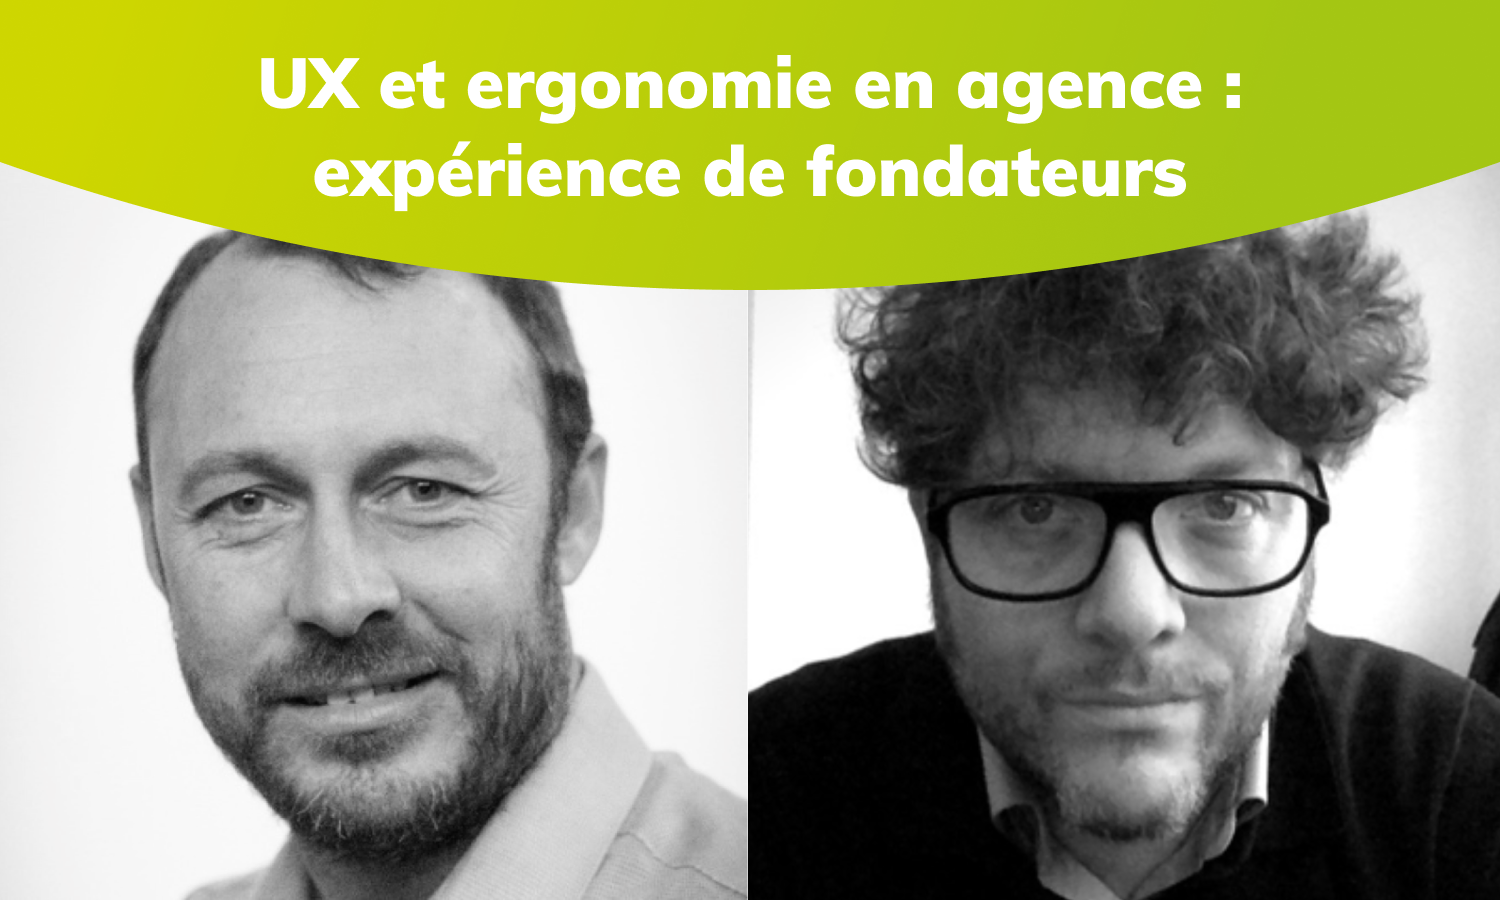 ux-ergonomie-agence-interview-affordance